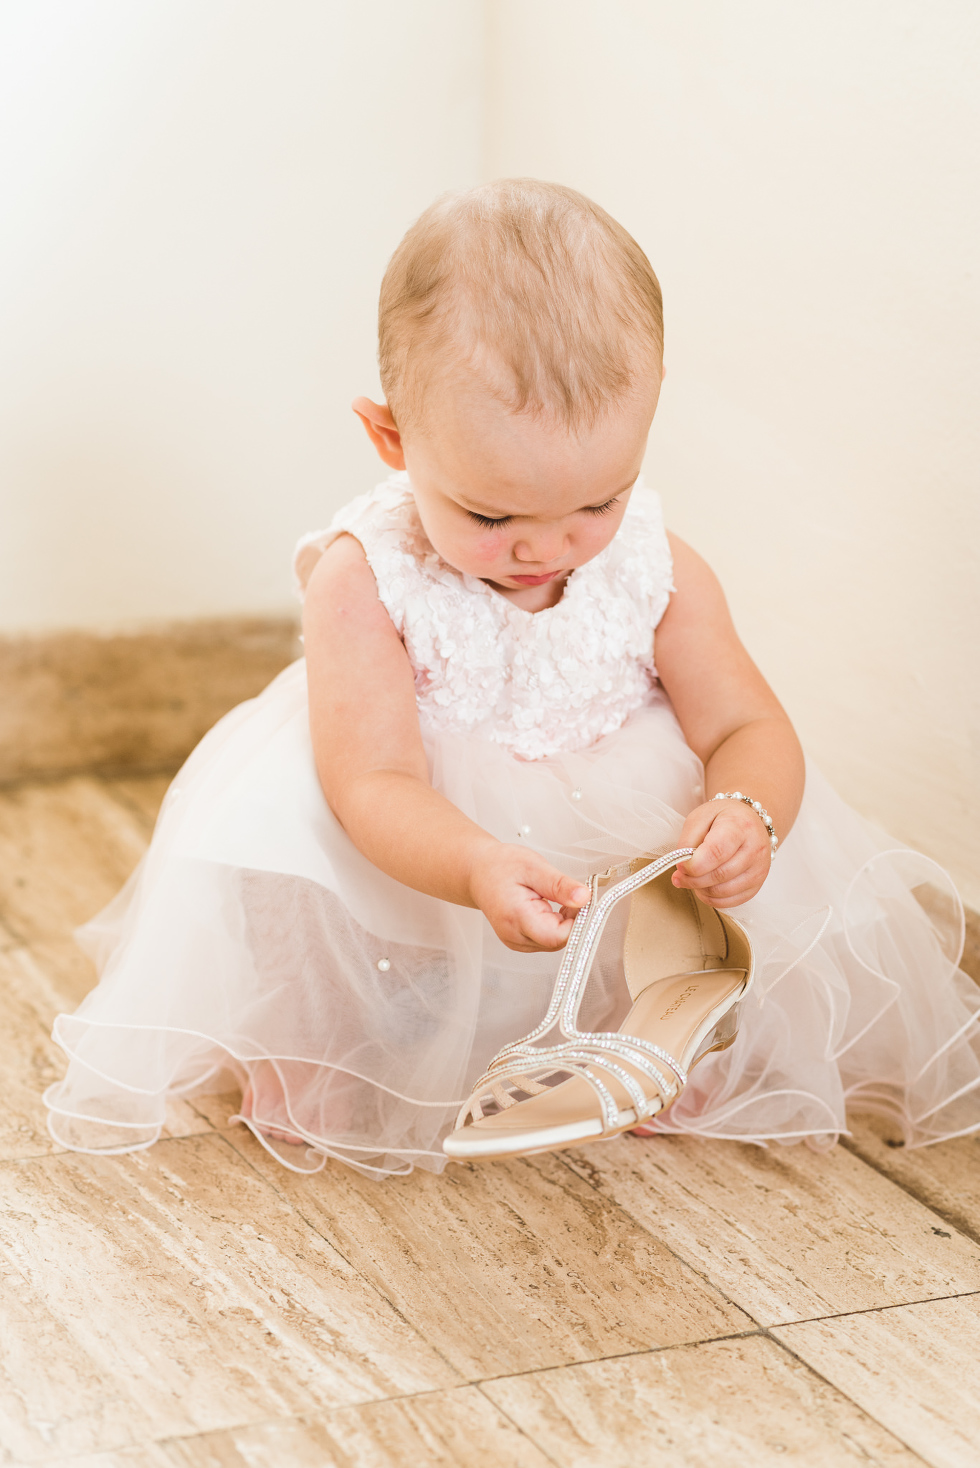 baby in a dress examining brides wedding shoe before ceremony at Now Sapphire Resort in Mexico